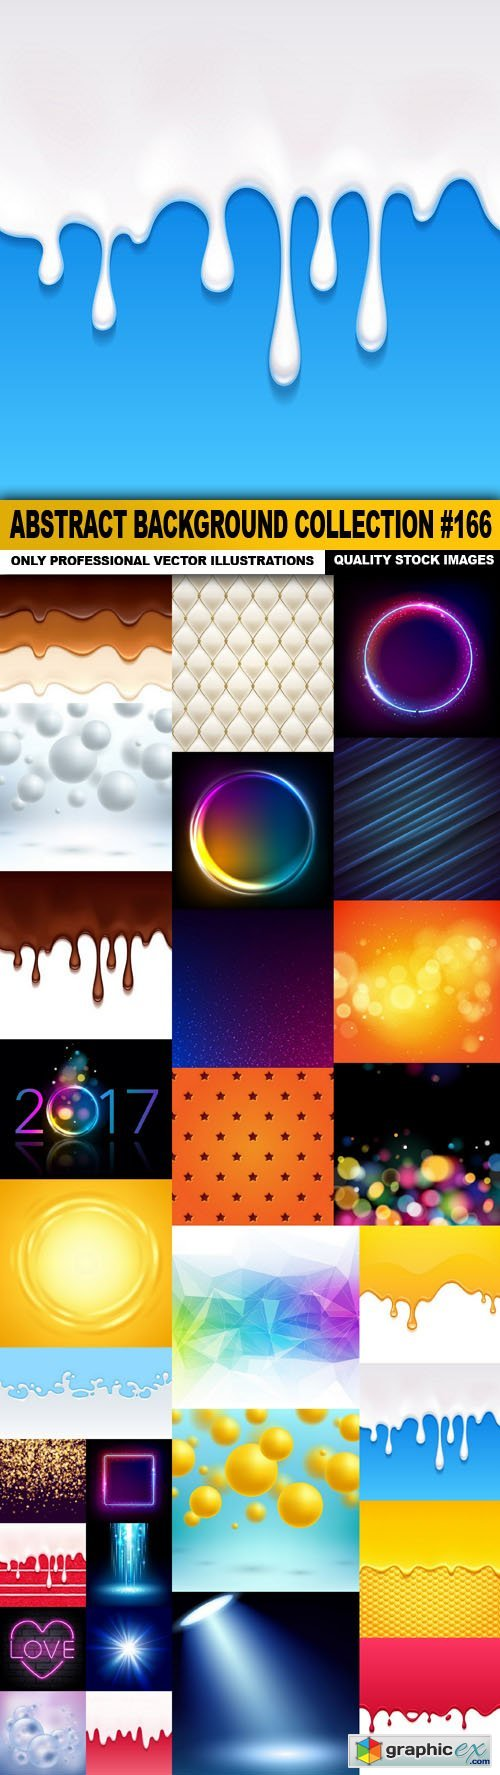 Abstract Background Collection #166 - 30 Vector